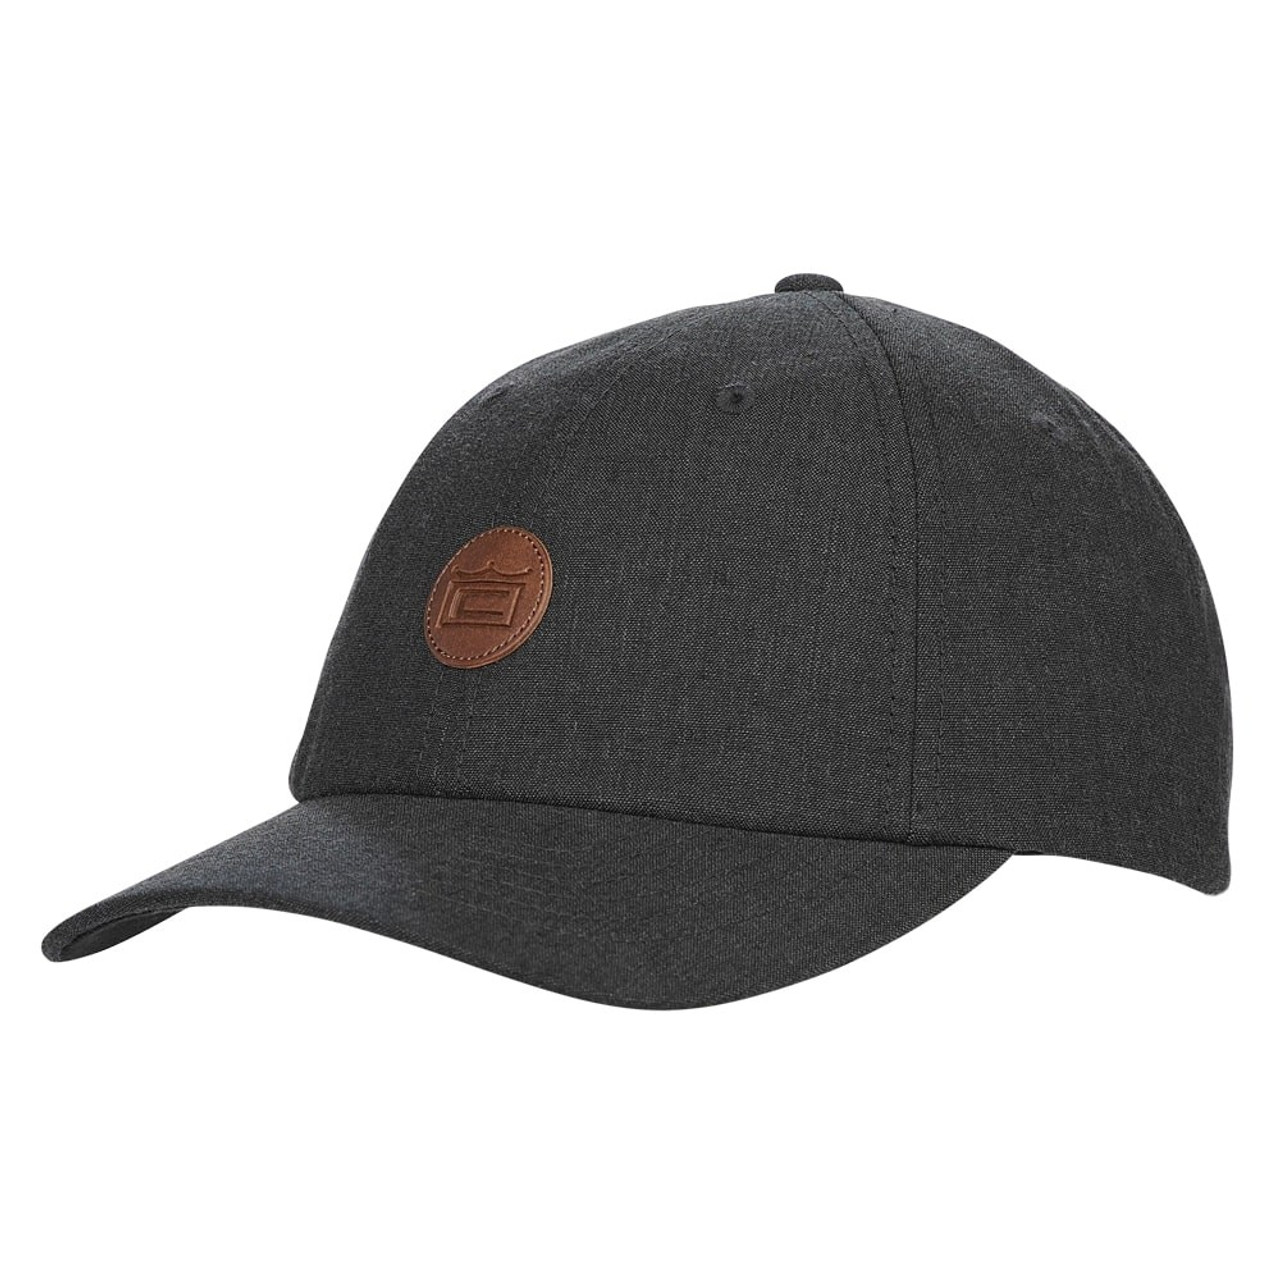 Cobra Crown Slouch Adjustable Cap - Black